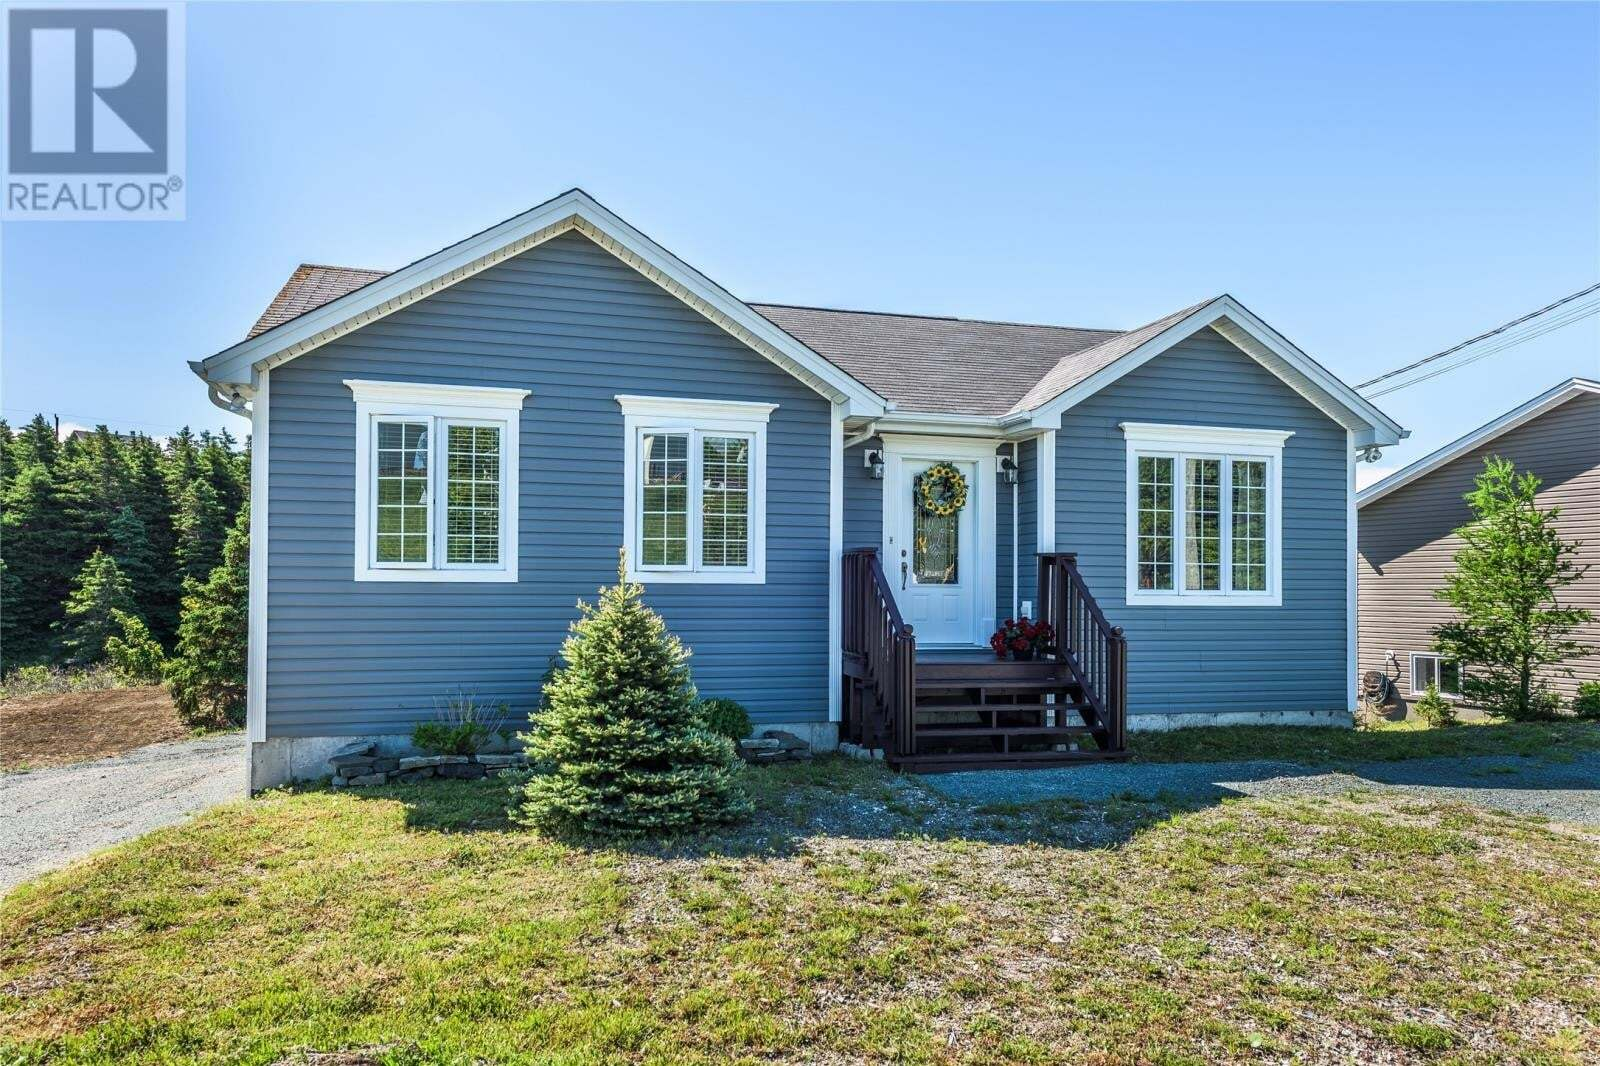 House for sale at 80 Gully Rd Pouch Cove Newfoundland - MLS: 1216568